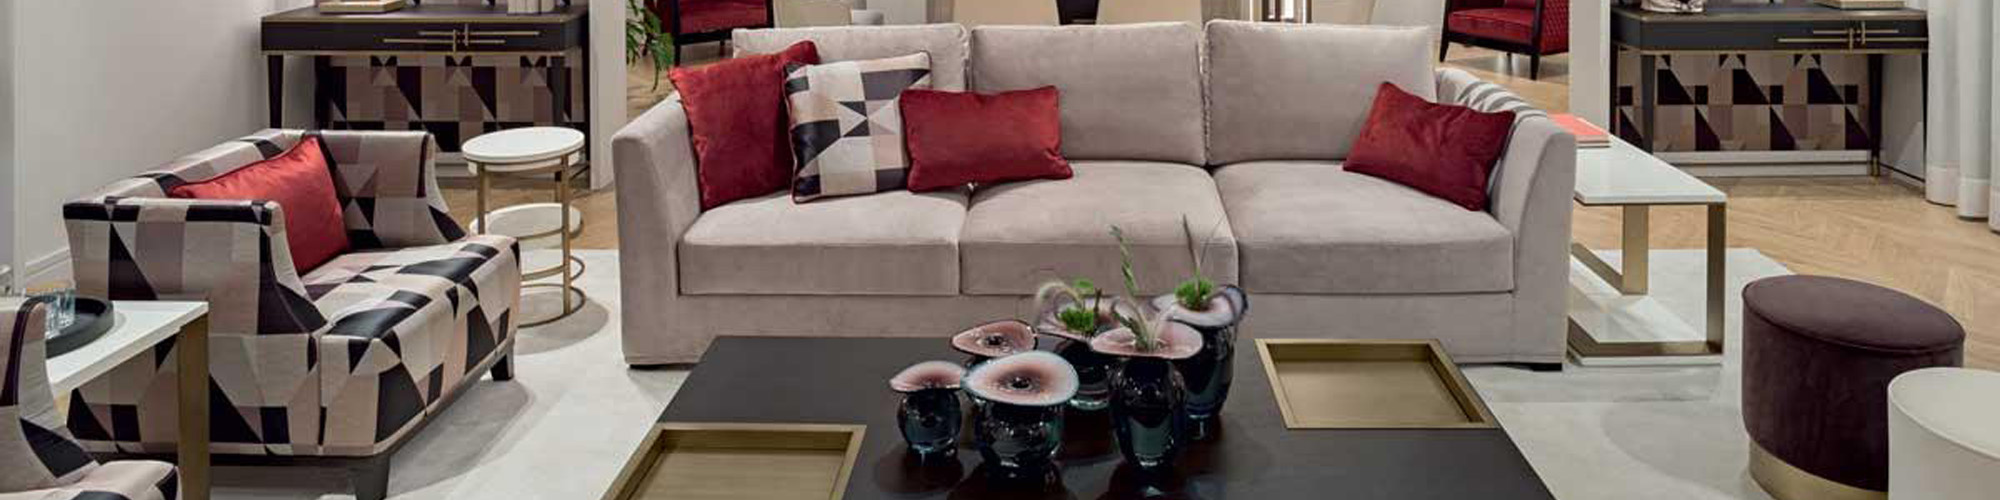 Oasis Group Furniture by FCI London